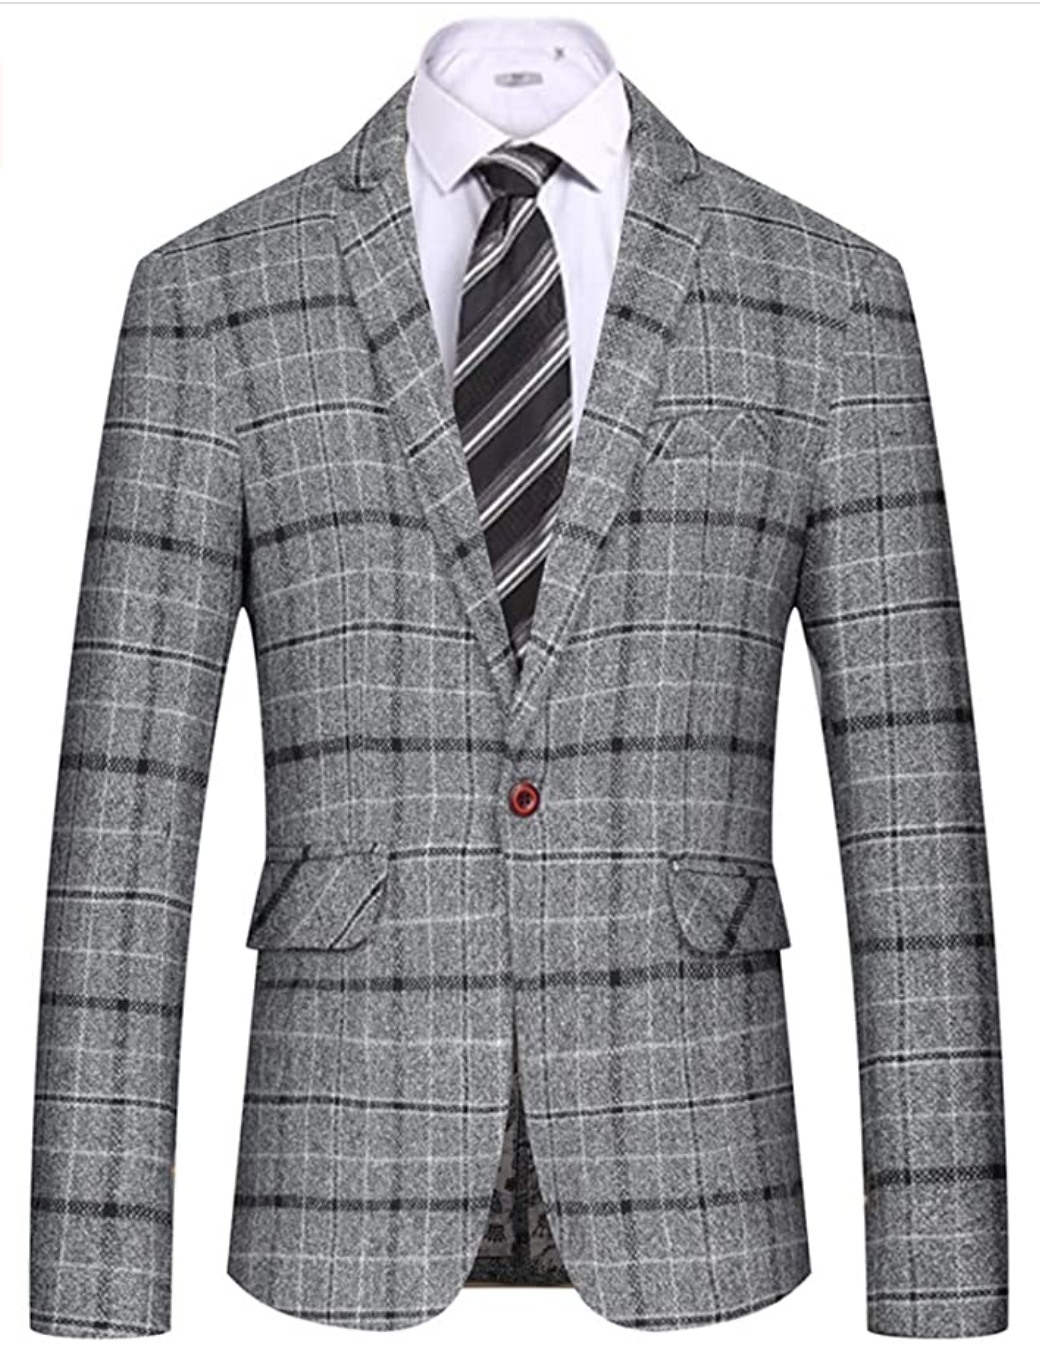 Checkered suit from Mage